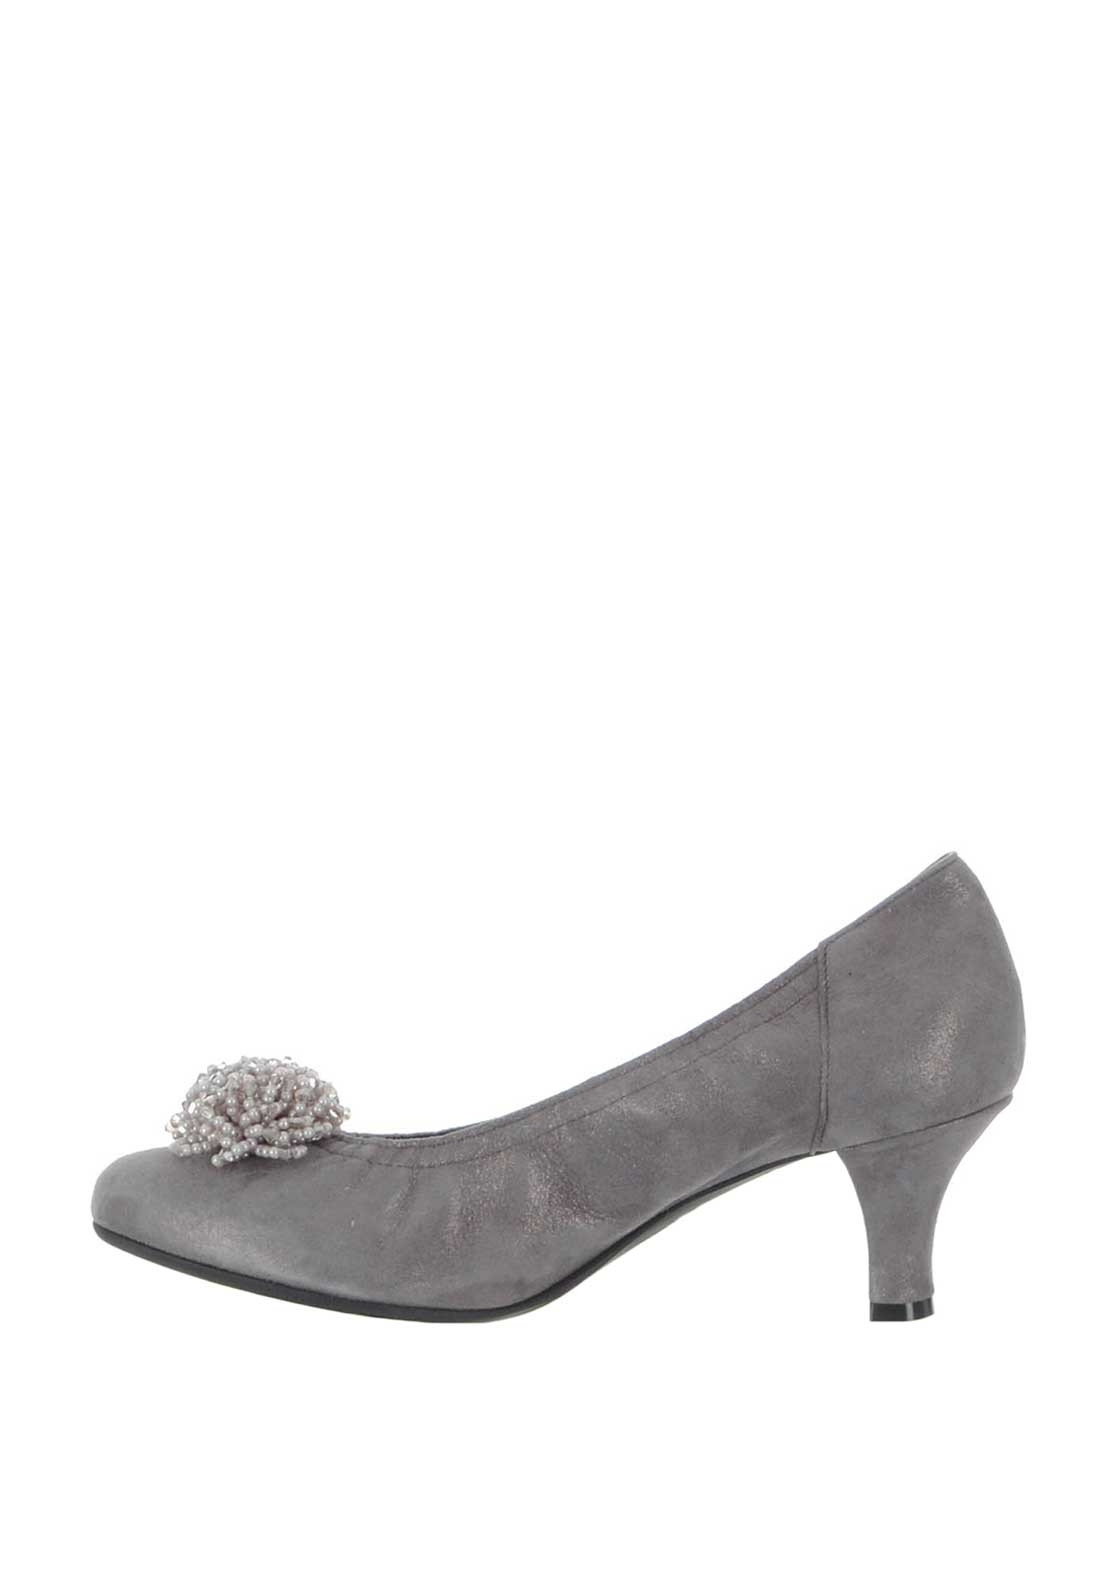 Suede Beaded ShoesGrey Le Court Babe Low f7vYbgyI6